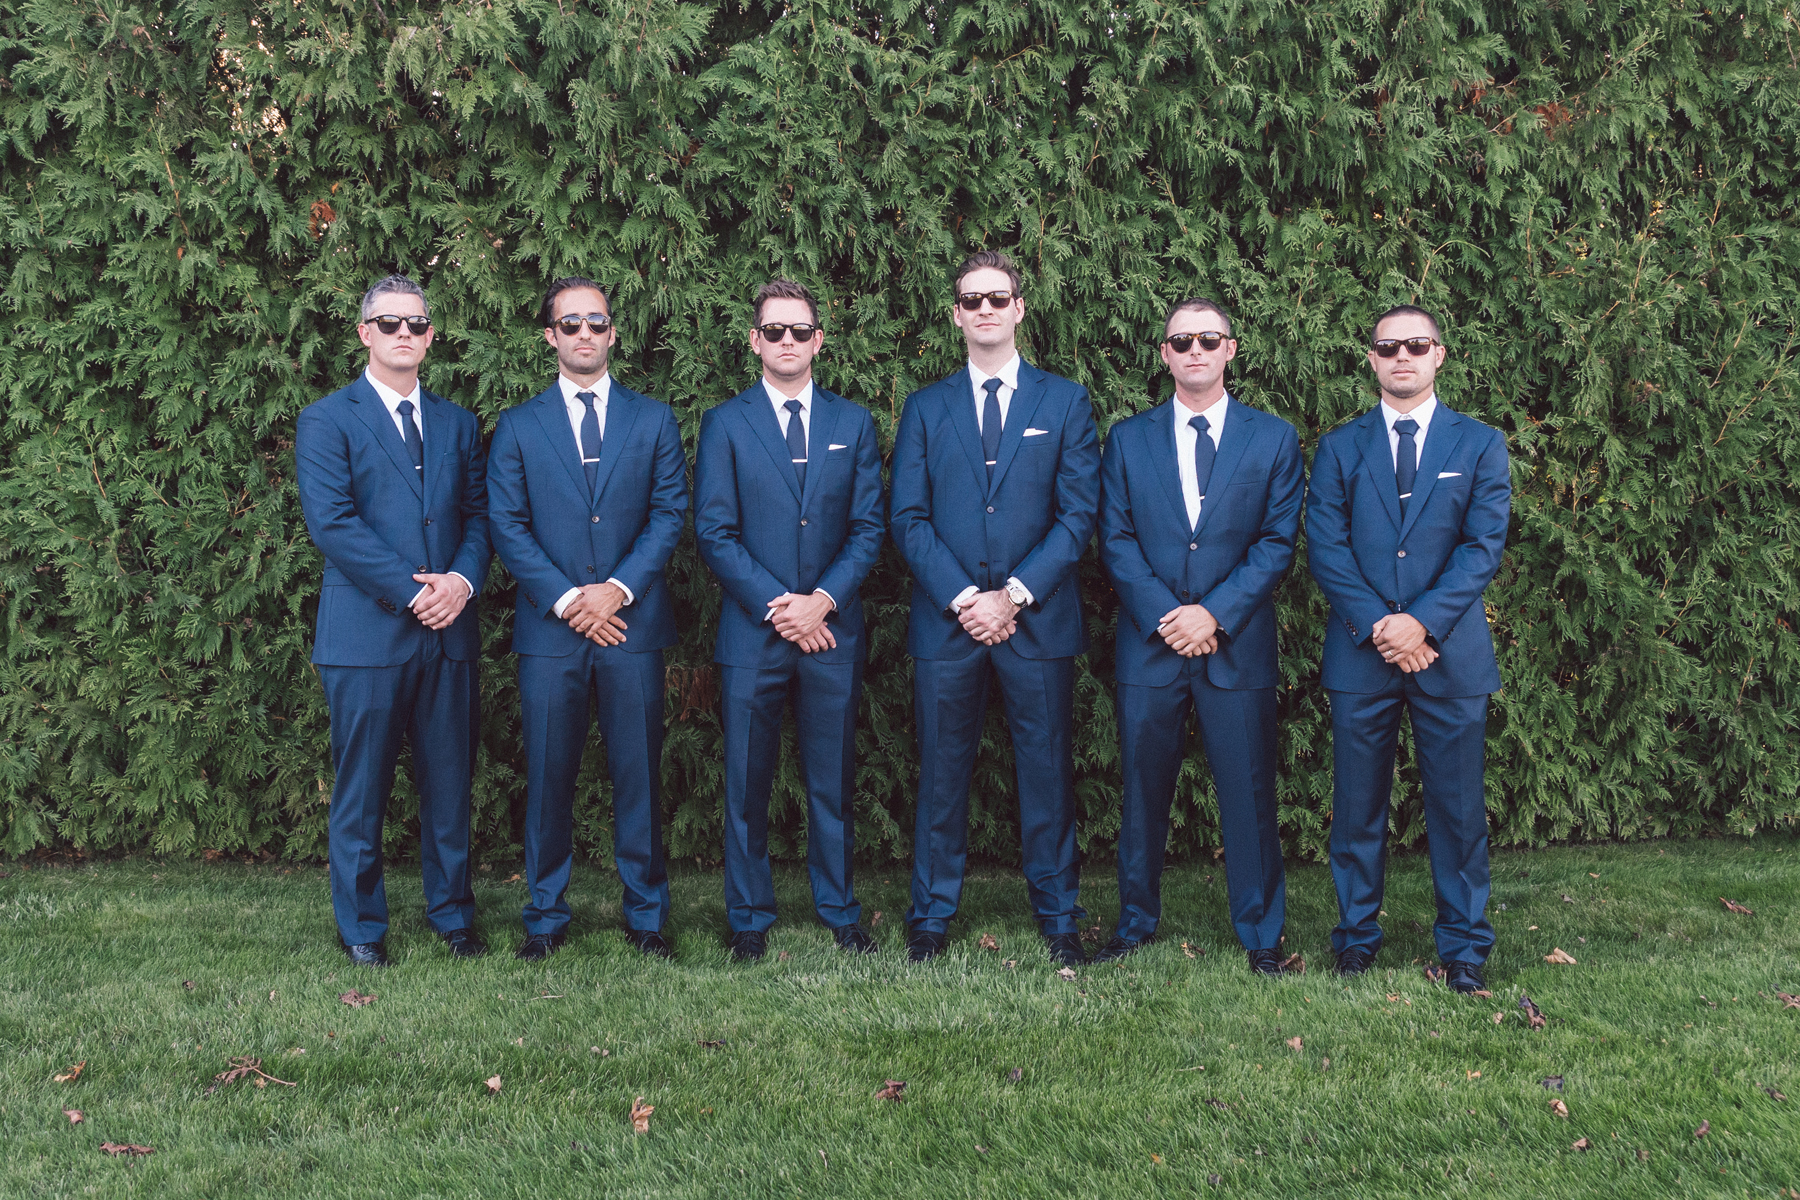 Navy Suits | Bay Harbor Michigan | Groomsmen | Northern Michigan Wedding Planning | Tableau Events